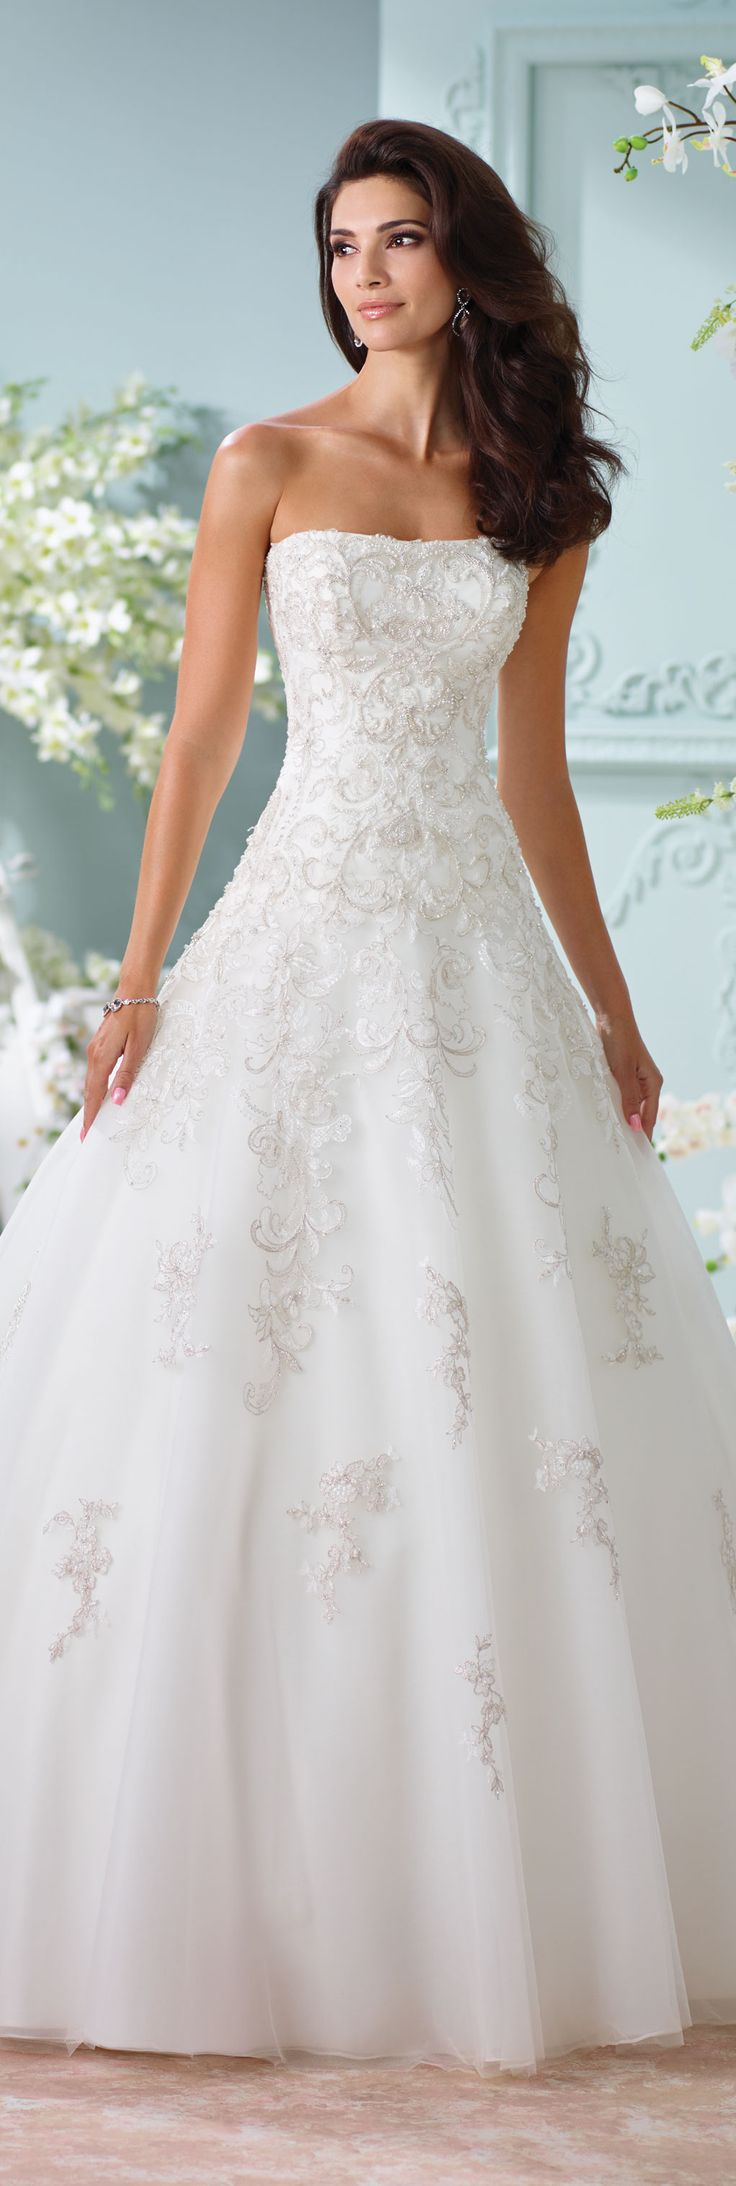 f860b4f51881d628fad5a08fb9b9ddaa--wedding-dress-tulle-strapless-wedding-dresses